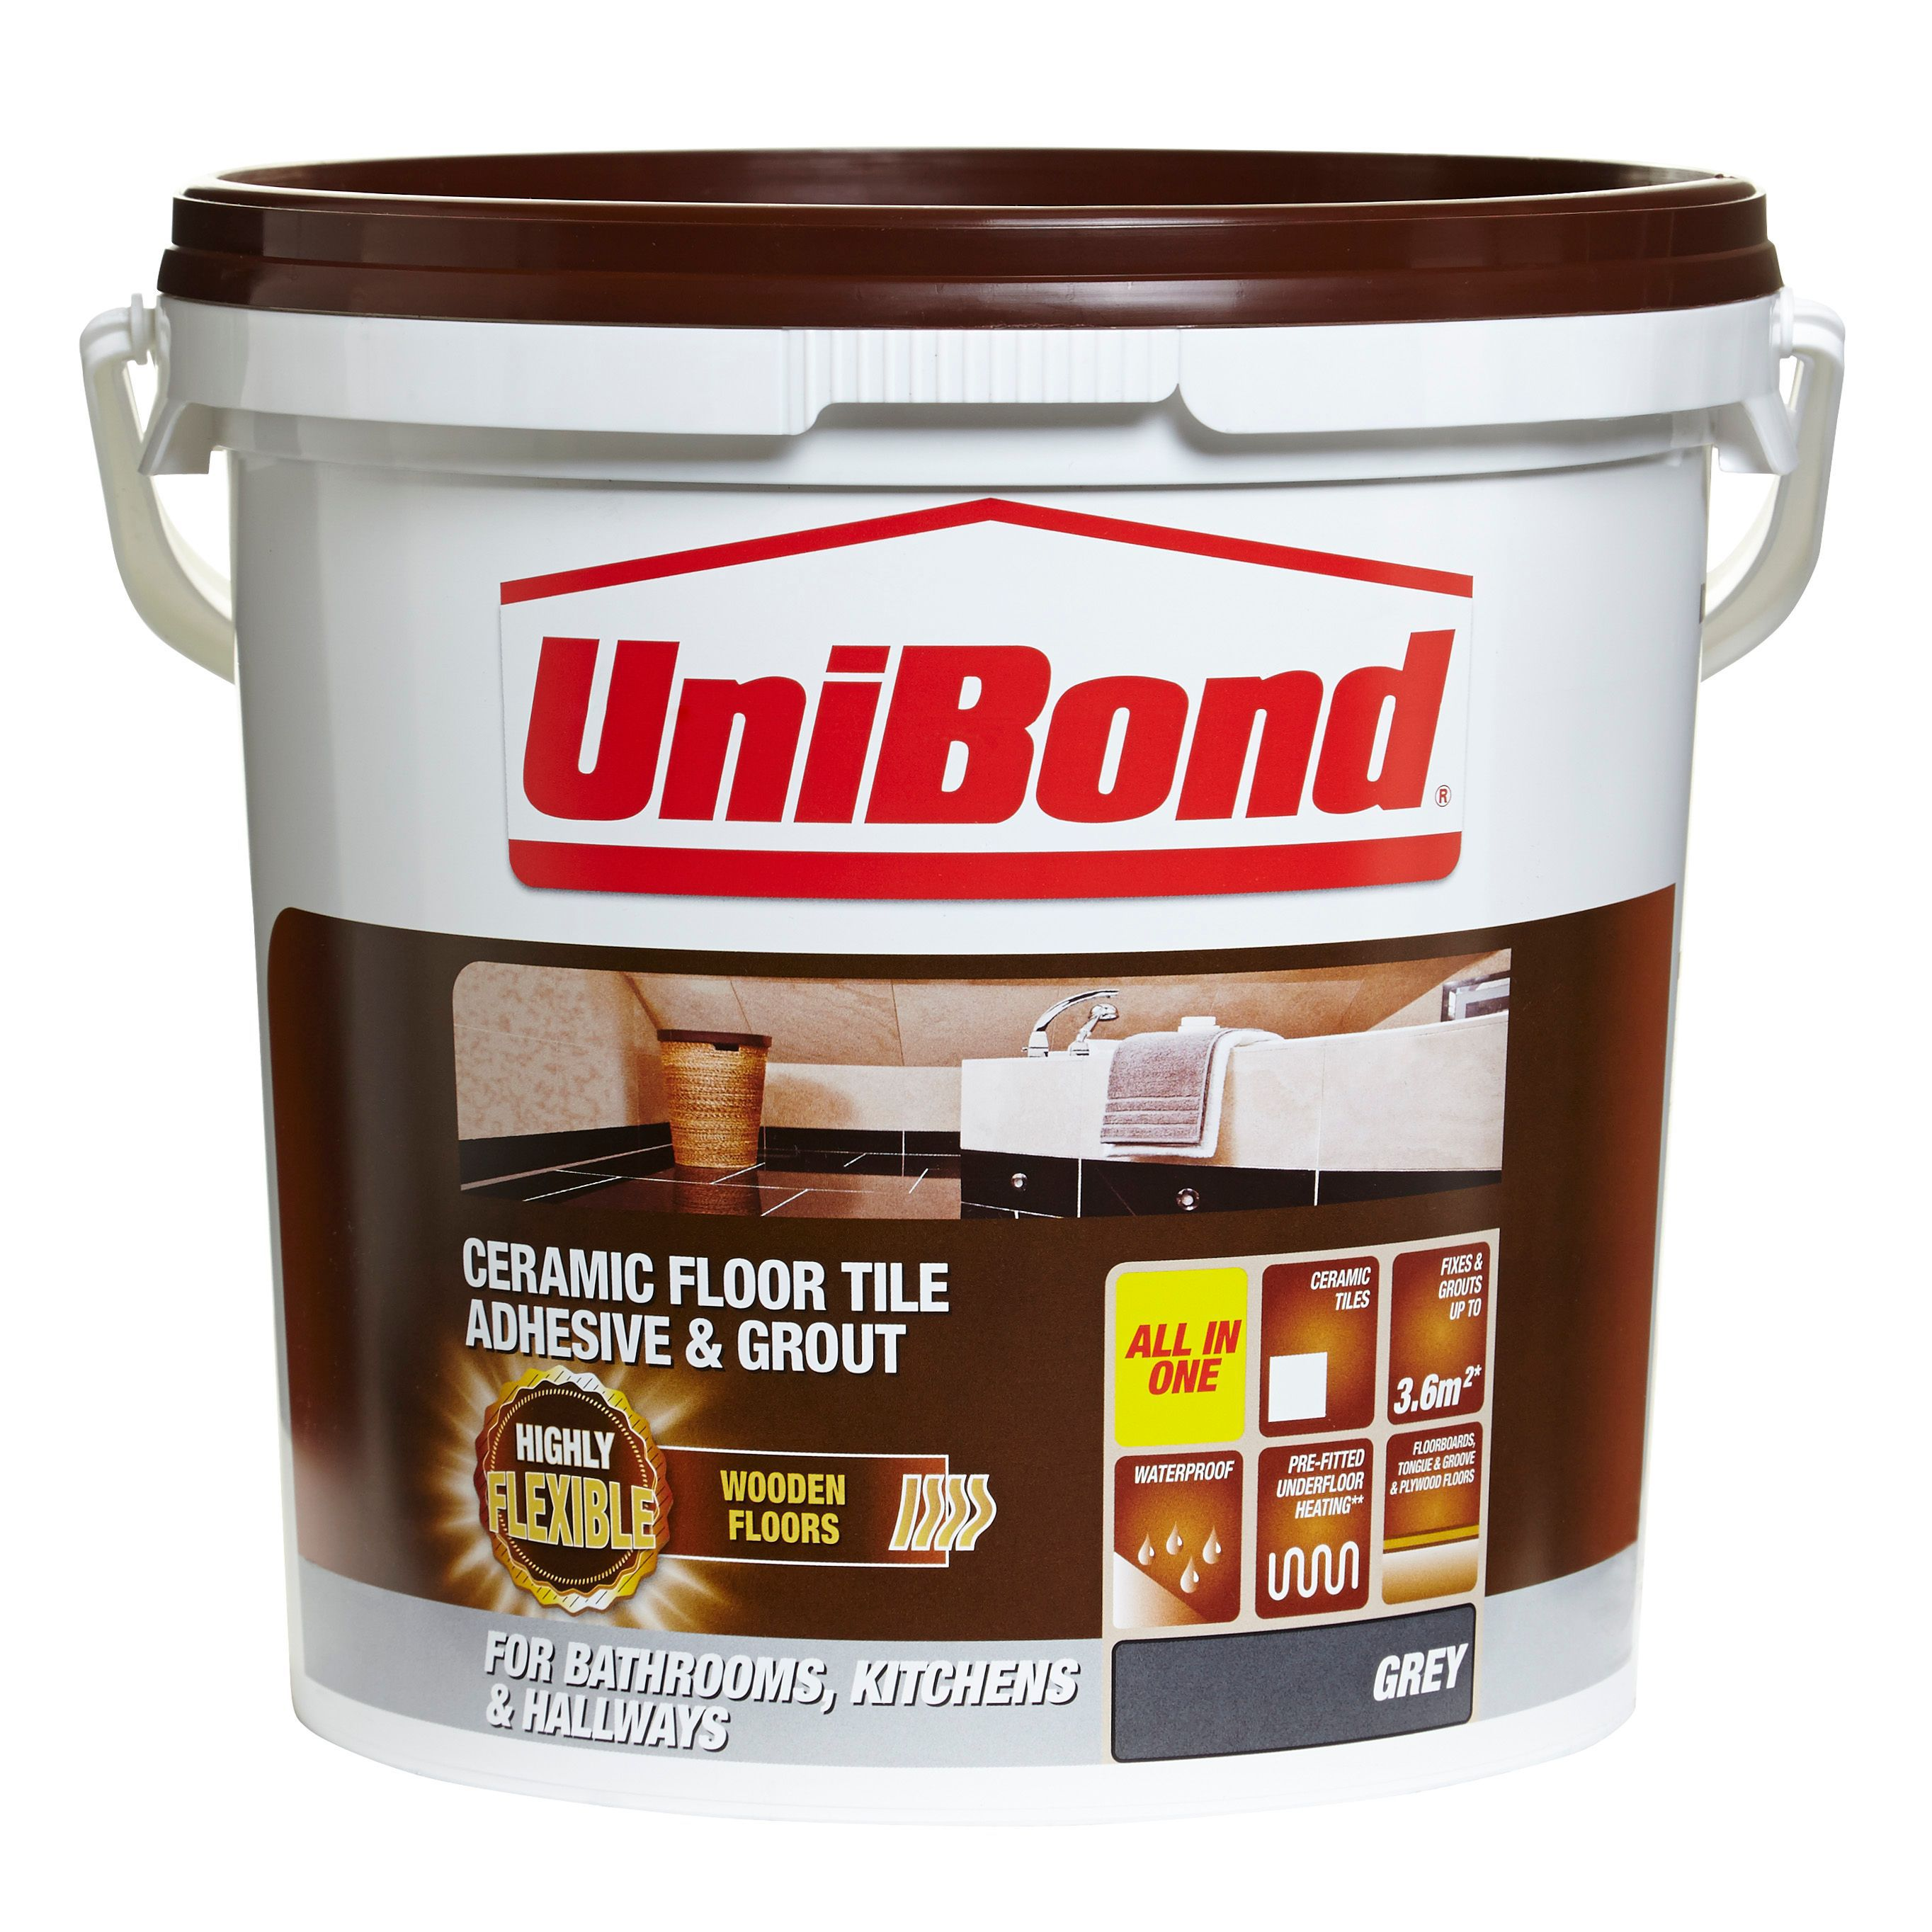 Unibond ready to use floor tile adhesive grout grey 143kg unibond ready to use floor tile adhesive grout grey 143kg departments diy at bq dailygadgetfo Gallery